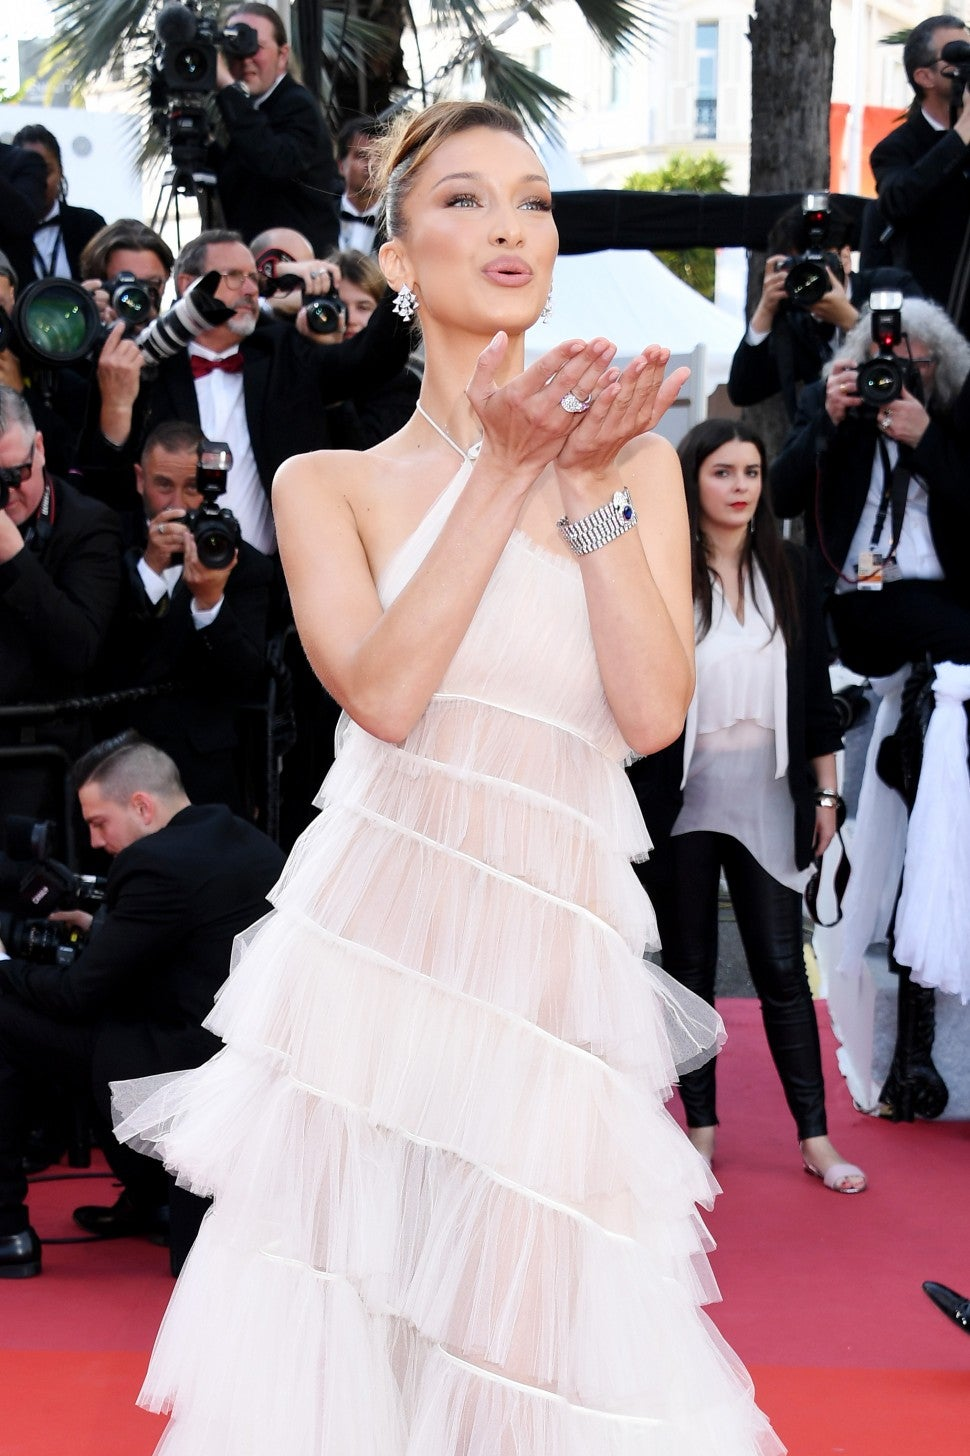 Bella Hadid at Rocketman screening during cannes